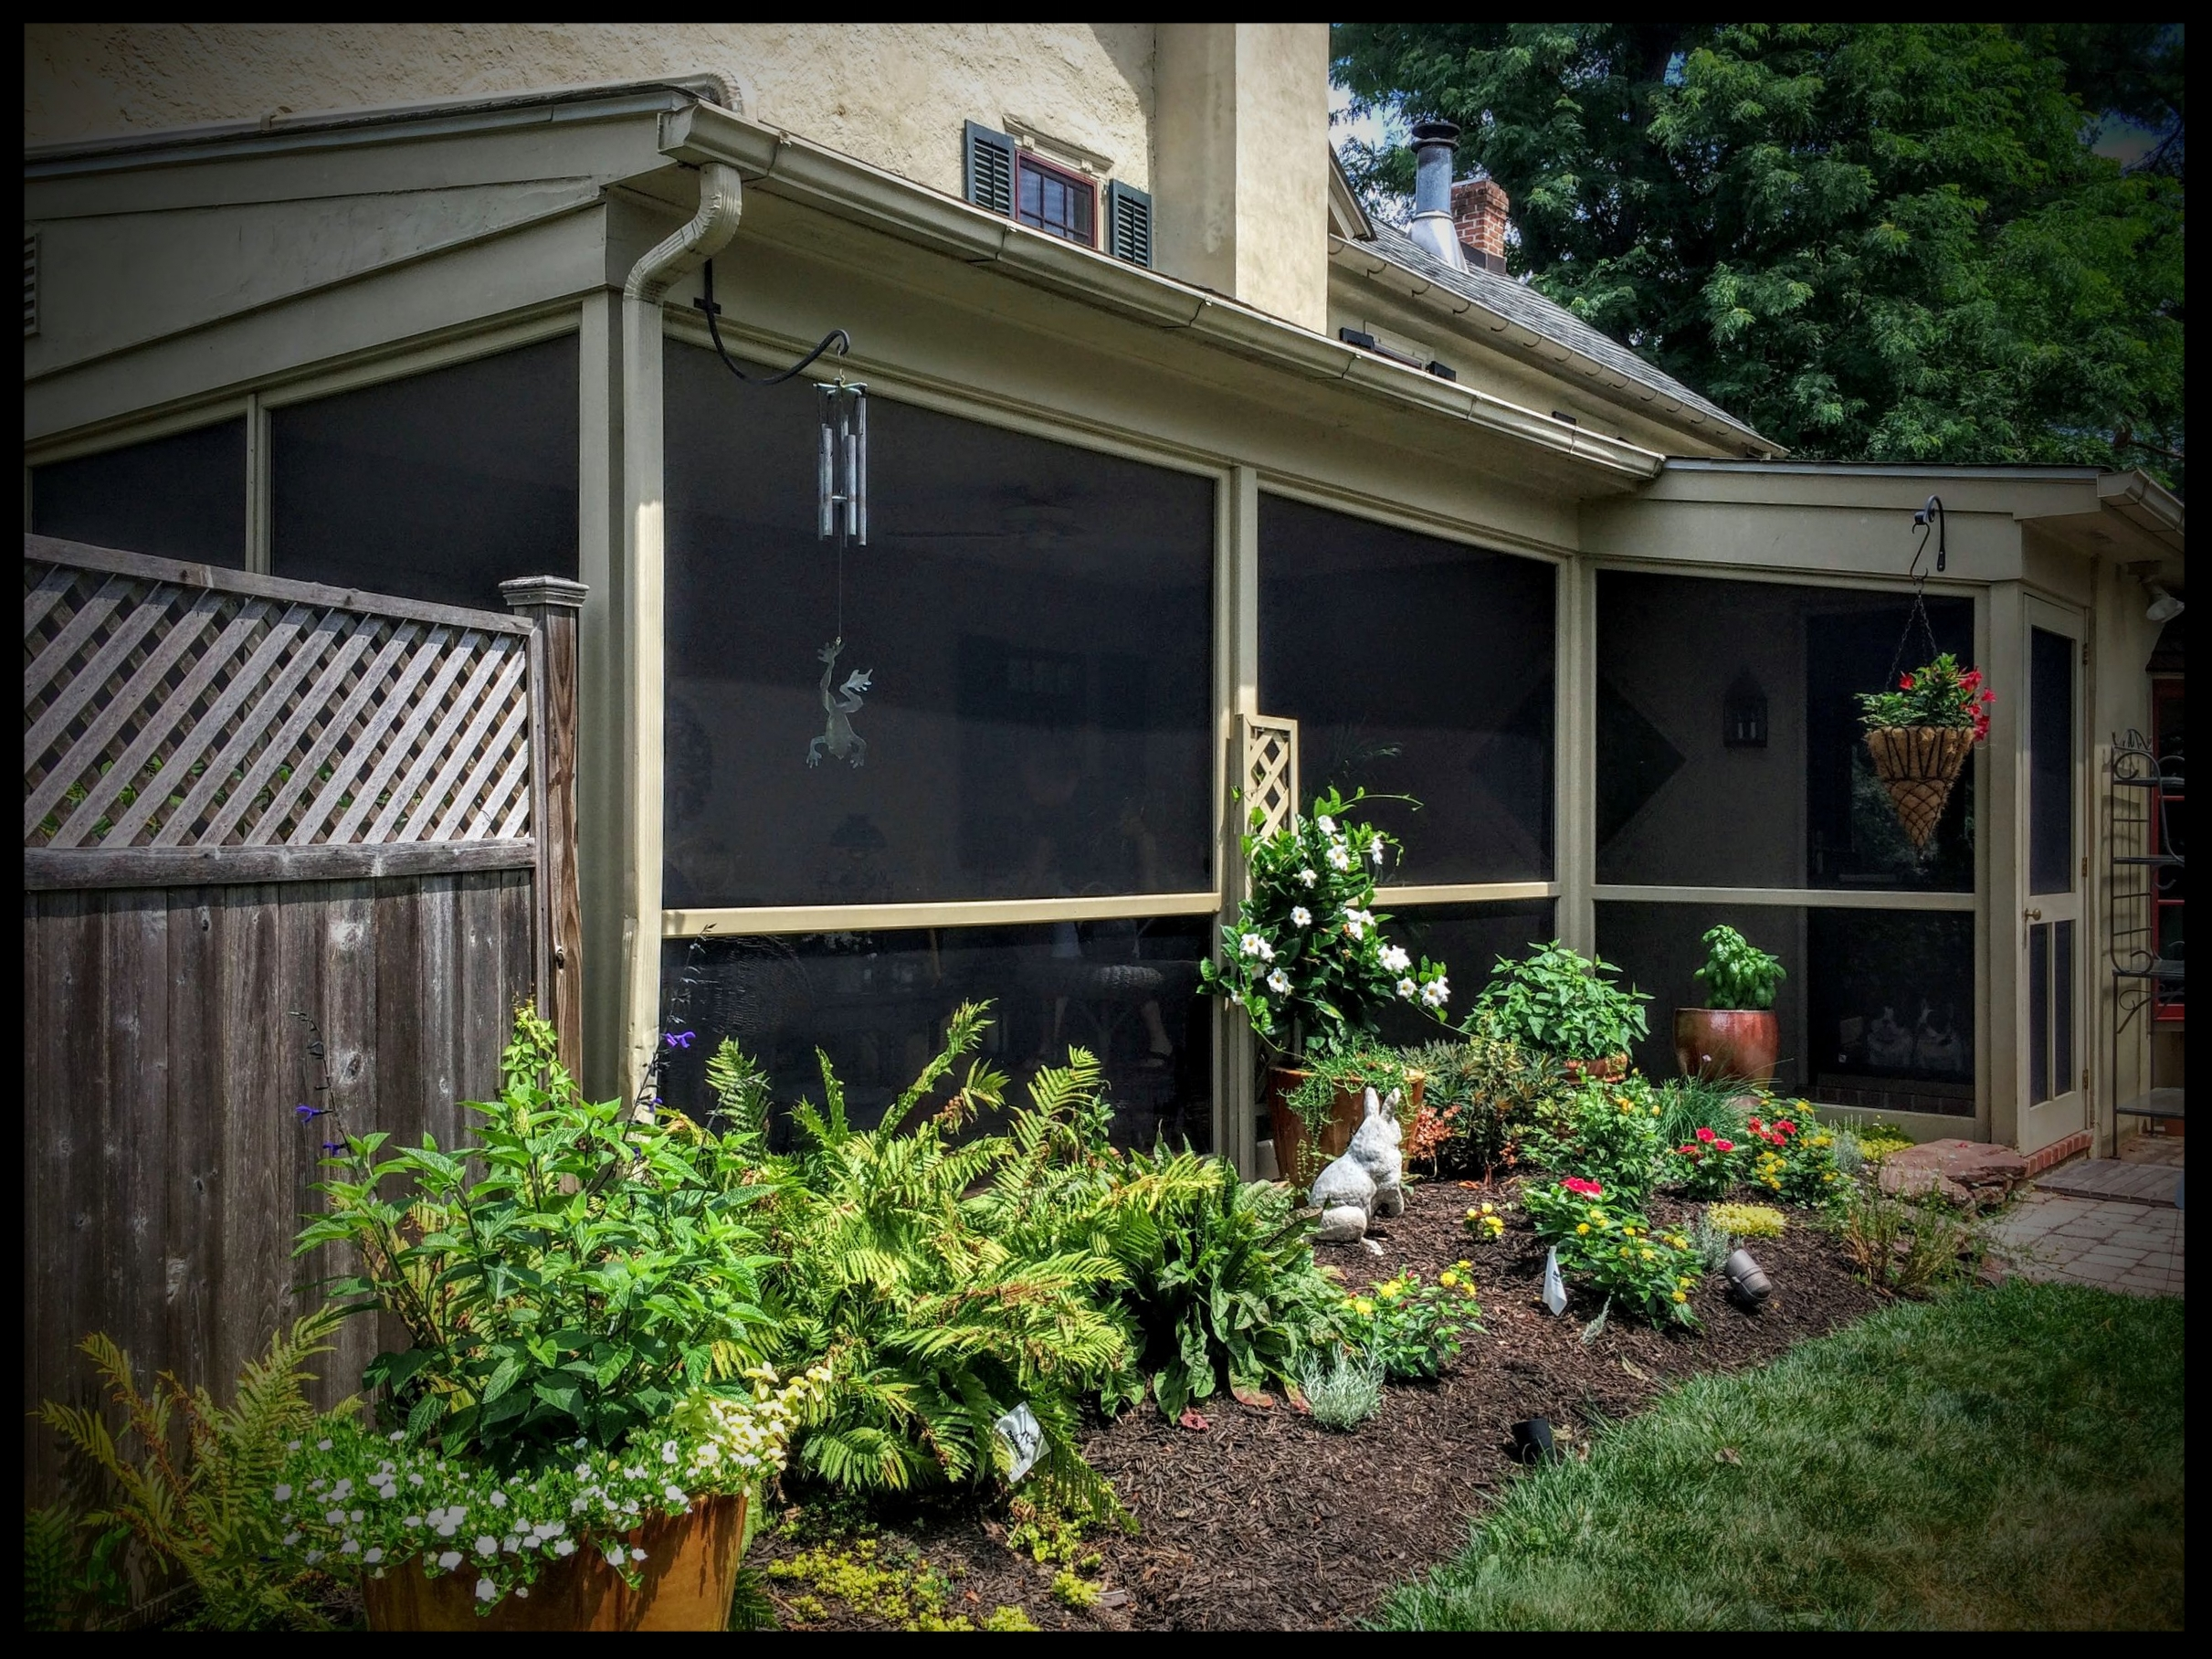 Renue Glass and Screen Repair Garden Patio, Shrubs, & Screen Tight